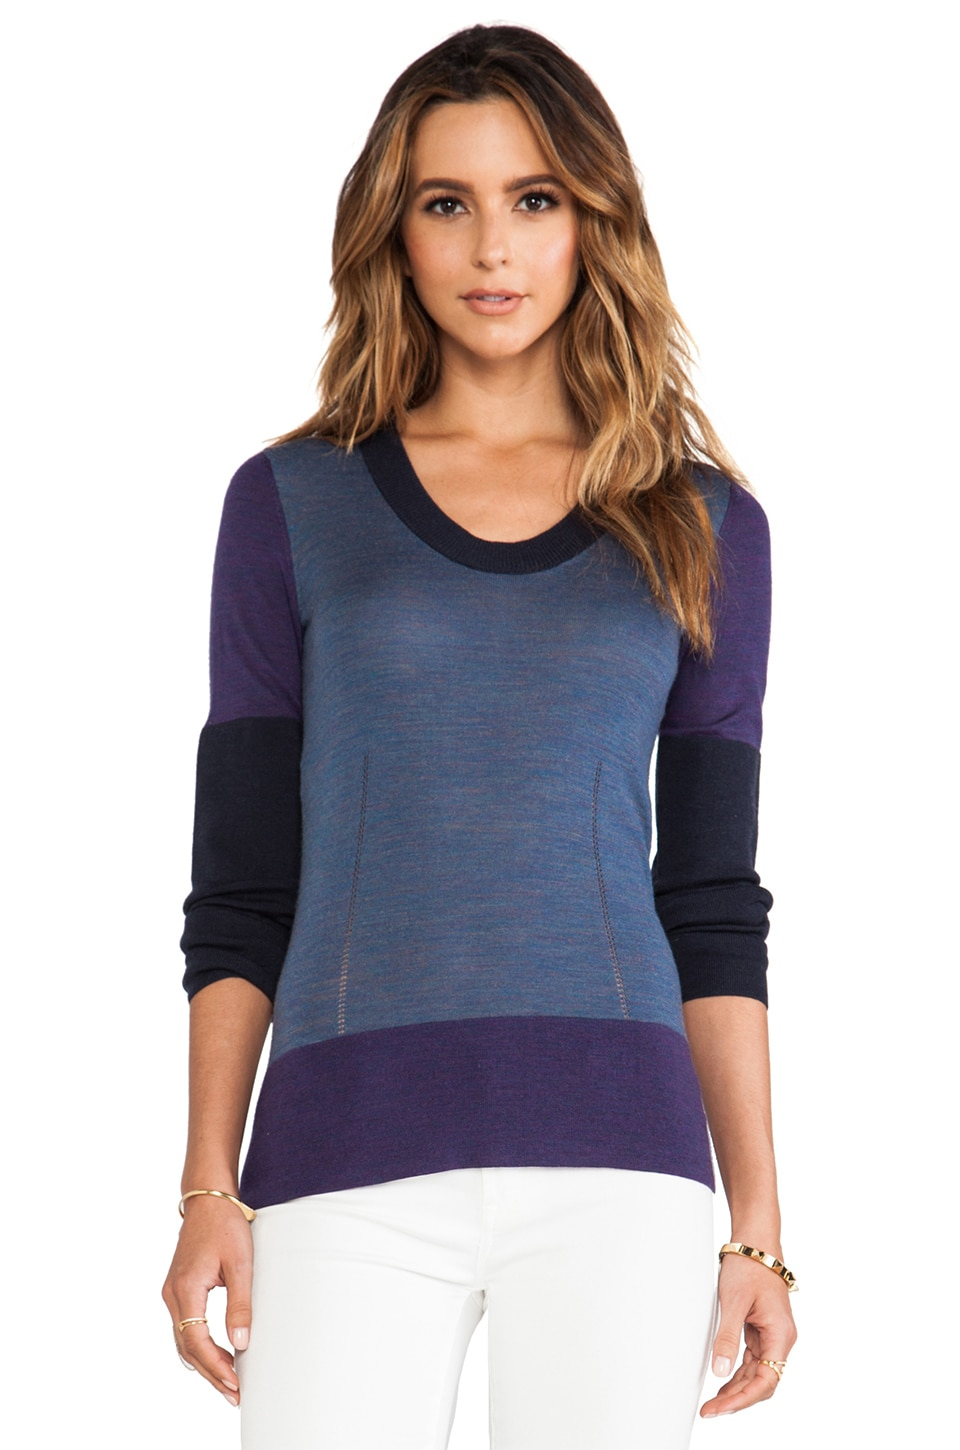 DEREK LAM 10 CROSBY Crewneck Sweater in Purple Combo